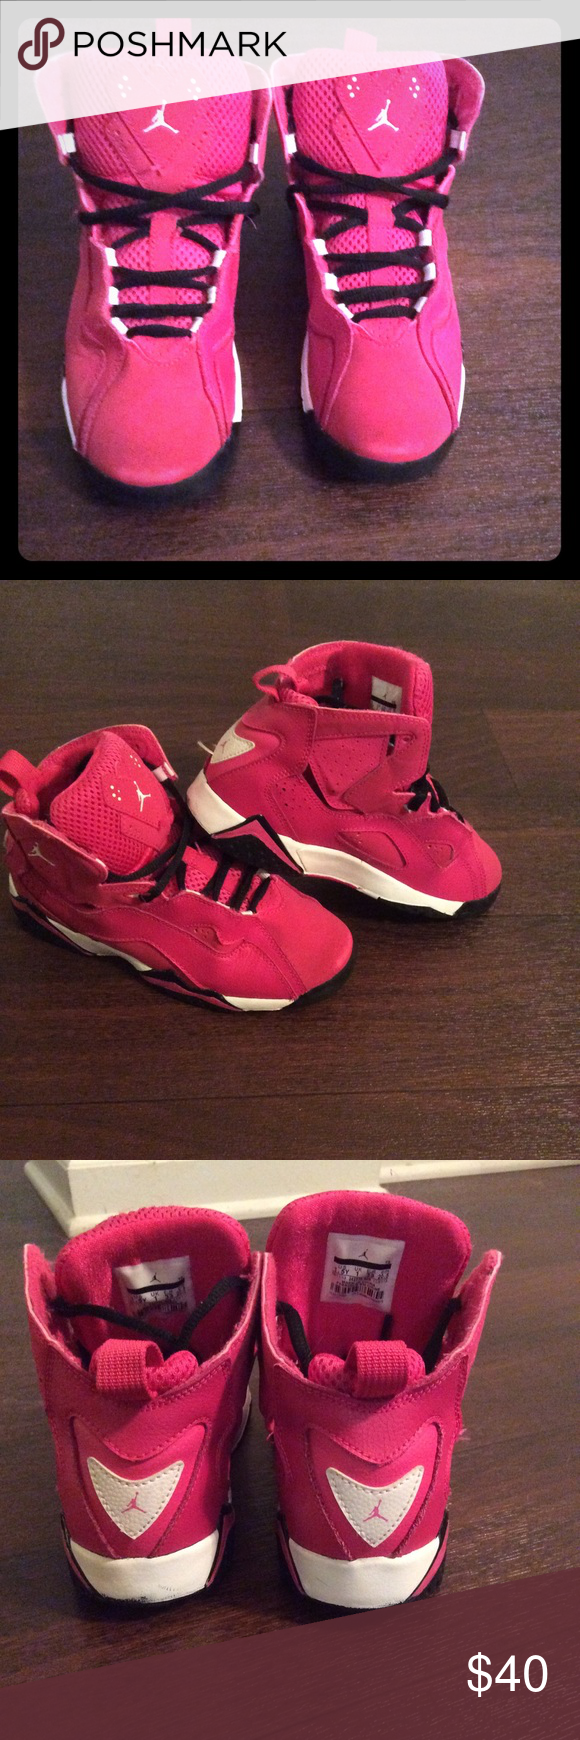 8c7fa31133c0b Jordan Retro 7 Girls Jordan Retro 7 Girls size 1,5 Youth ... Perfect shoes  for Back 2 School they have someone Minor stains on the front as shown in  the ...